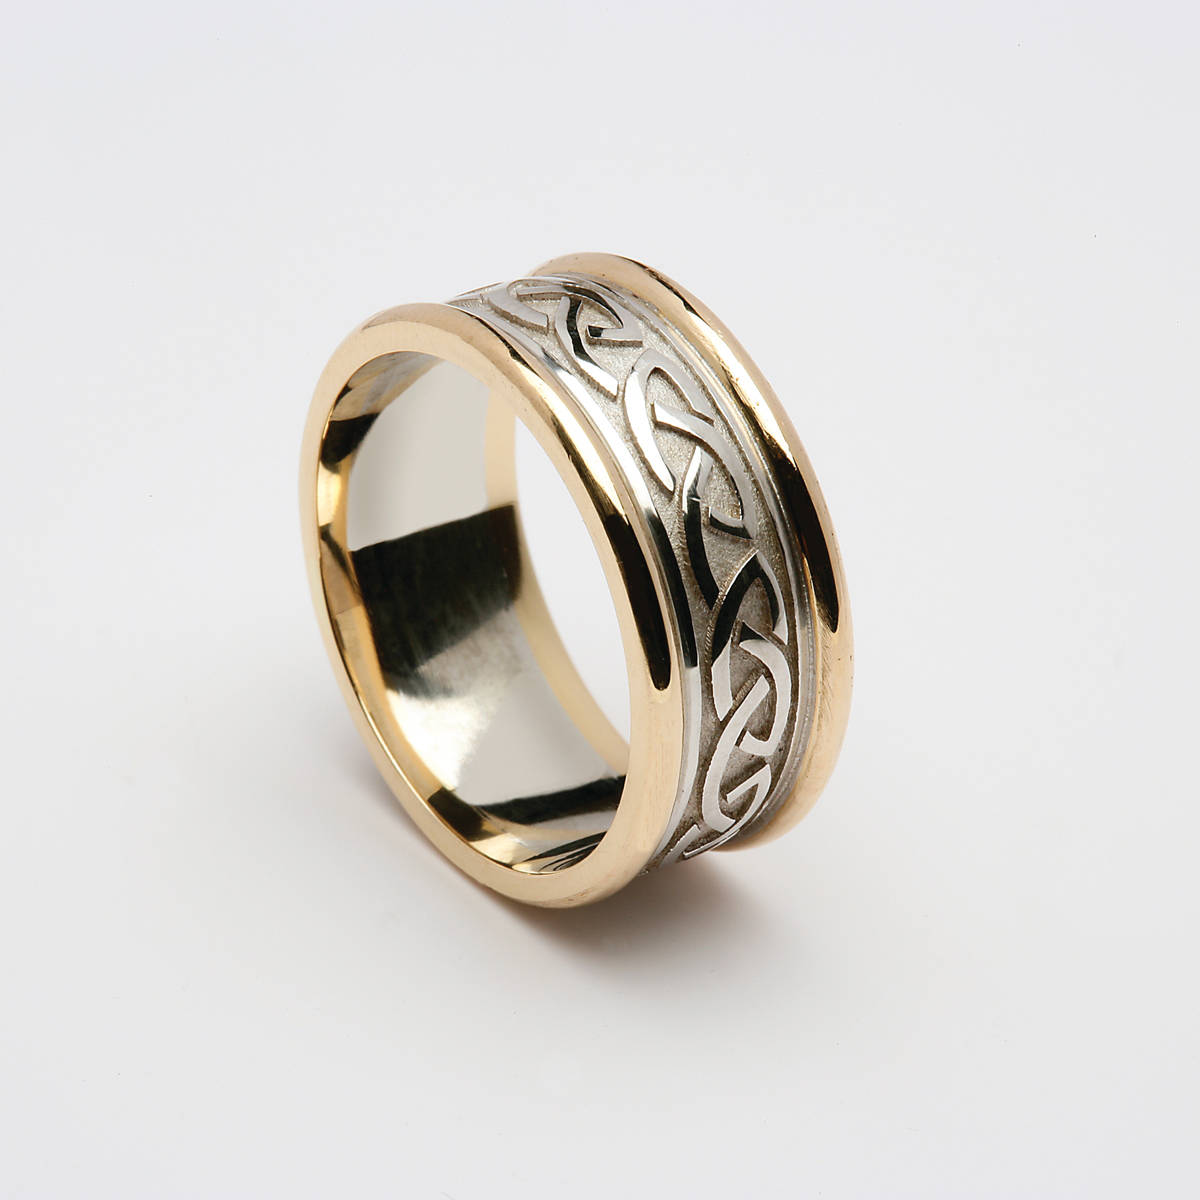 18 carat white gold man'sCeltic love knot wedding ring with yellow gold rims.7mmVery beautiful